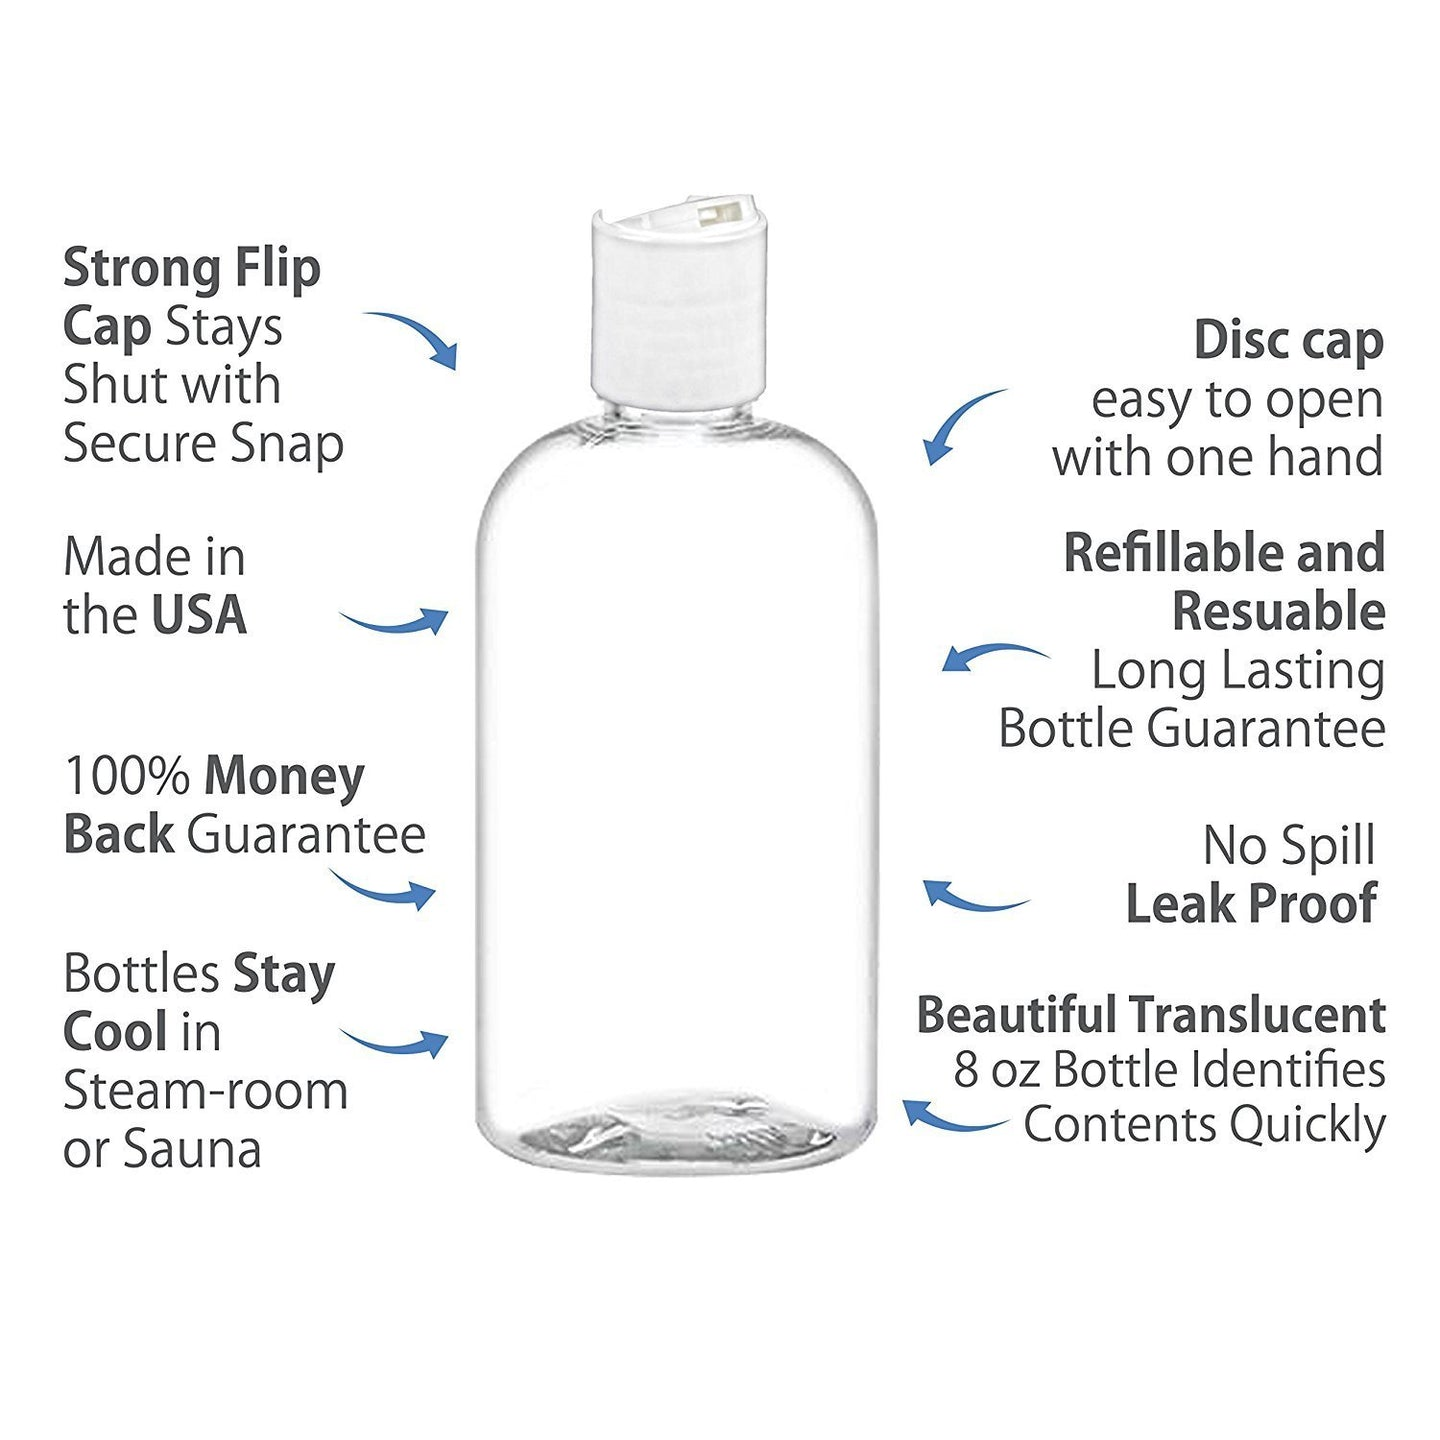 MoYo Natural Labs 8 oz Boston Travel Bottles, Empty Travel Containers with Disc Caps, BPA Free PET Plastic Refillable Toiletry/Cosmetic Bottle (Pack of 6, Clear)